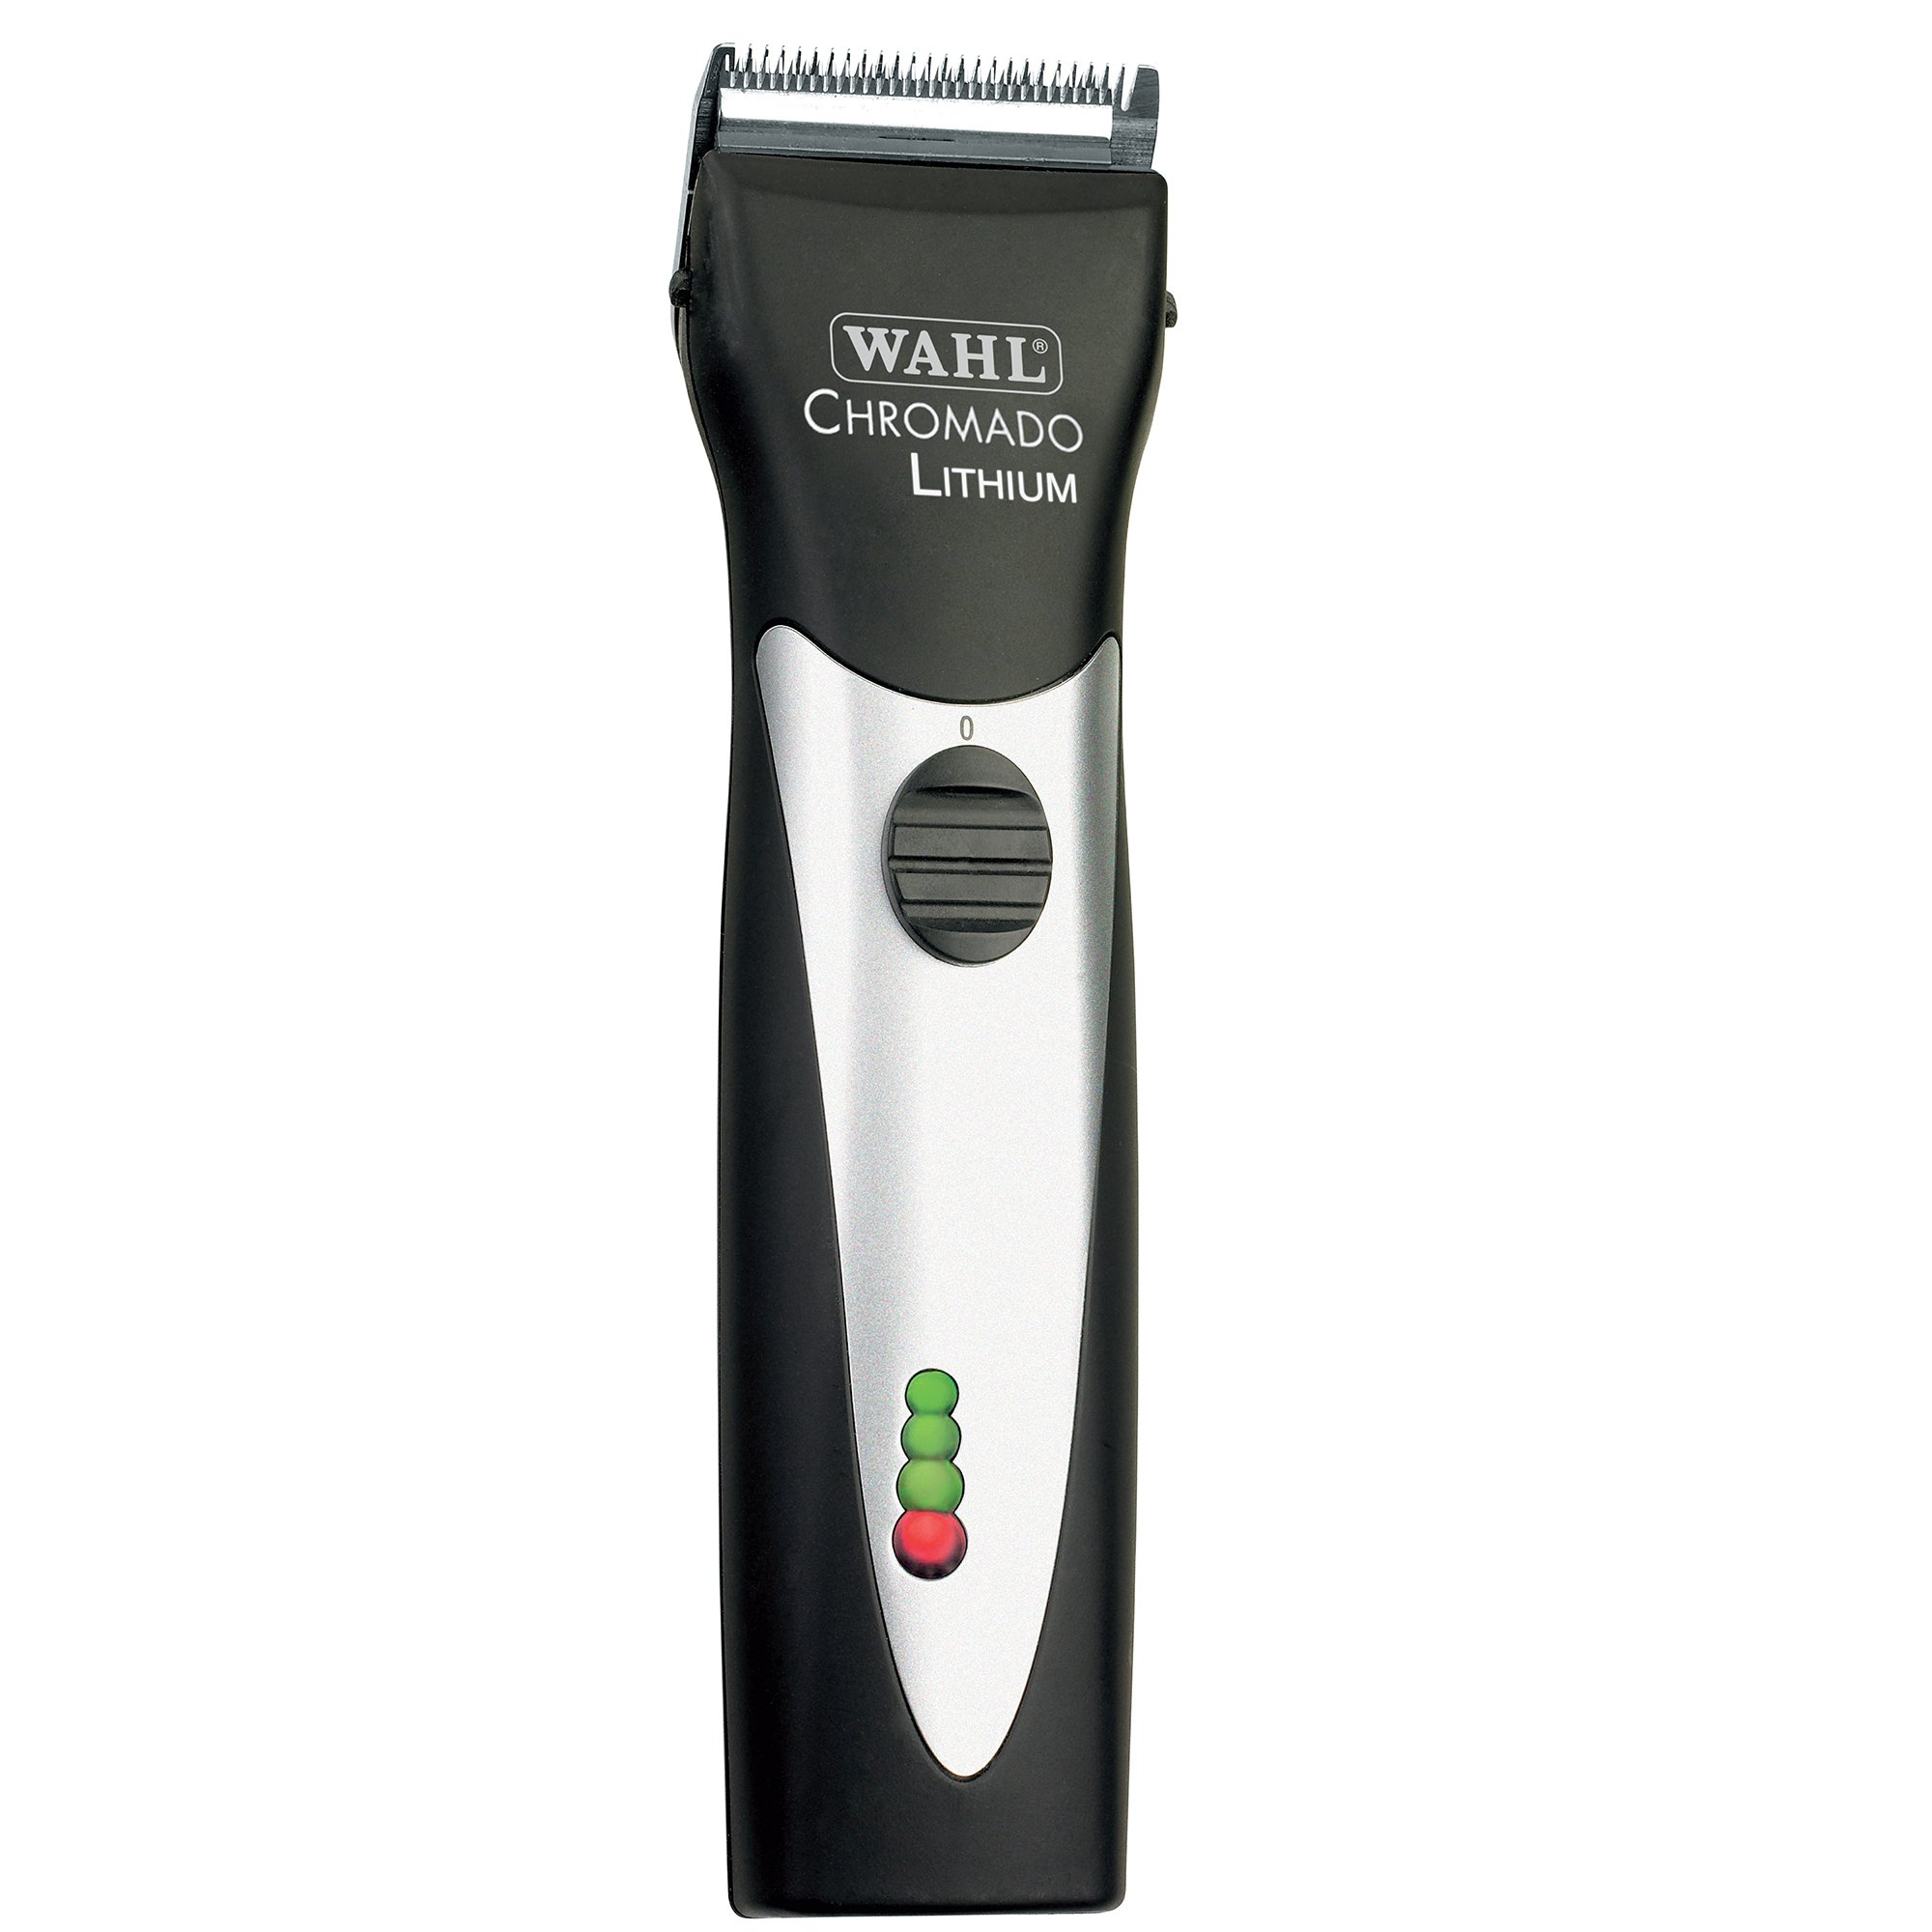 Wahl Professional Animal Chromado Lithium Pet, Dog, Cat, and Horse Corded / Cordless Clipper Kit, Black & Silver (#41871-0434) by Wahl Professional Animal